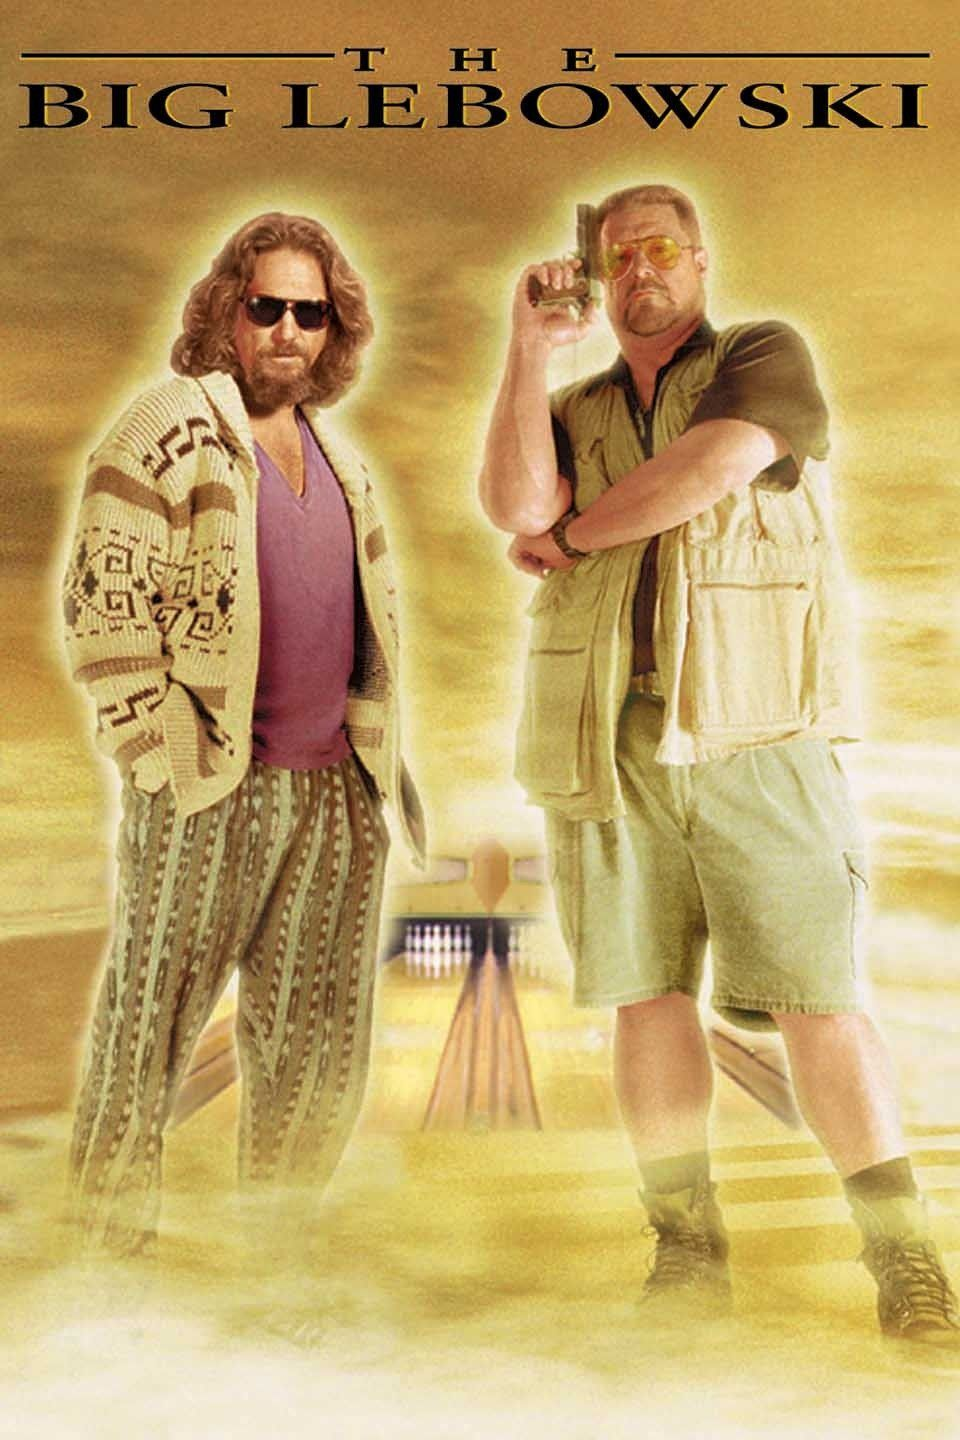 Jeffrey The Dude Lebowski A Los Angeles Slacker Who Only Wants To Bowl And Drink White Russians I The Big Lebowski Movie The Big Lebowski Big Lebowski Poster